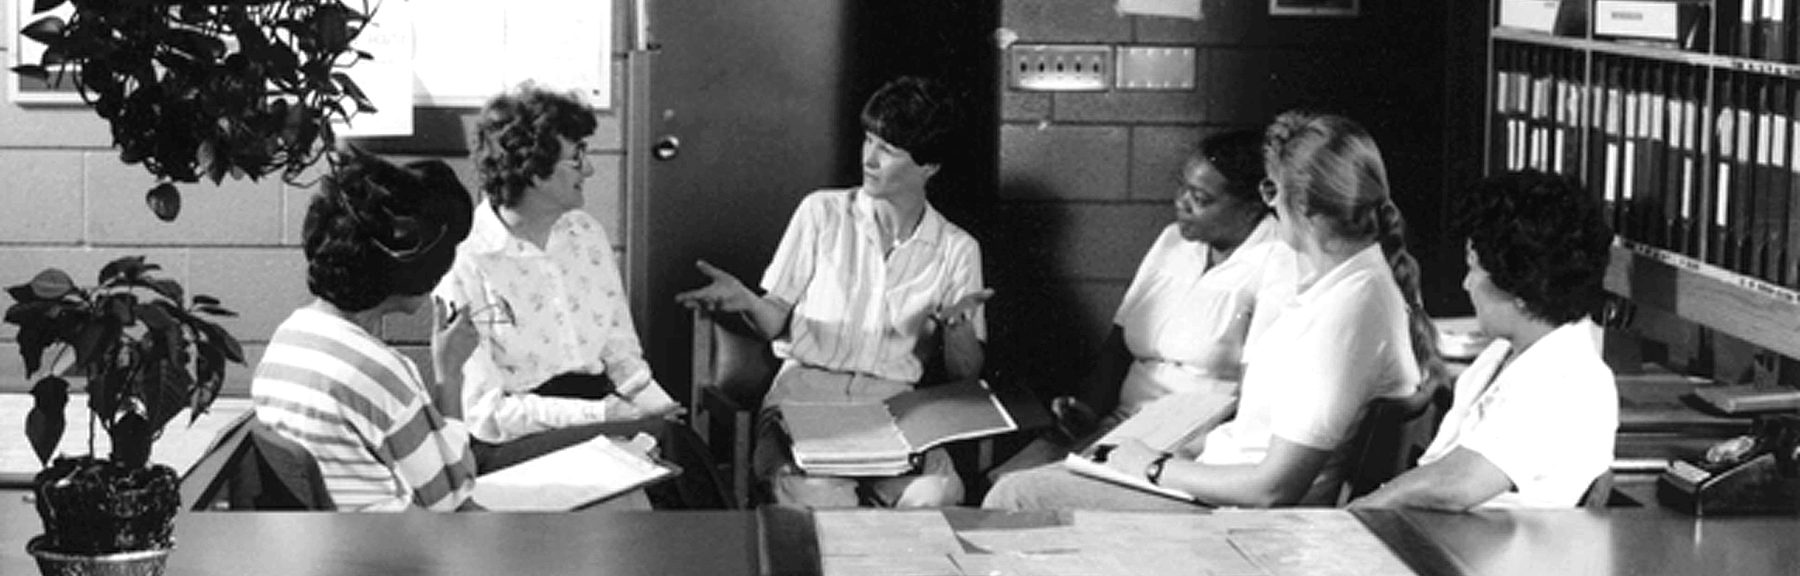 1970s black and white photograph of group of office workers or professional having a meeting or discussion in office setting